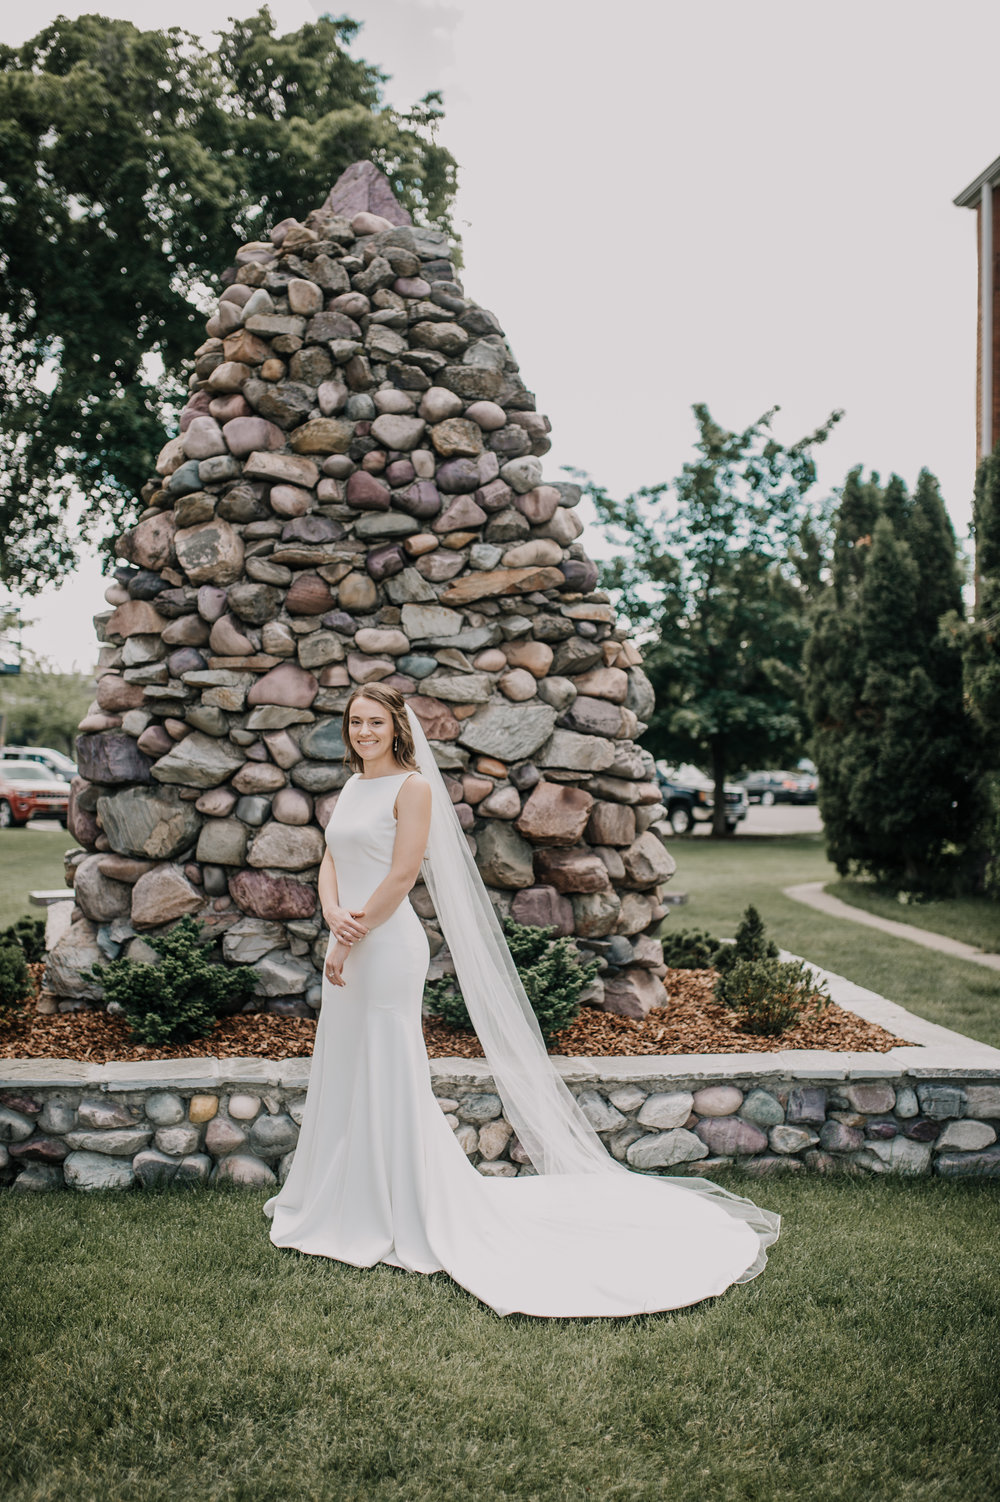 151 Montana Wedding Photographer_St. Francis Wedding_Tifani Zanto + Ryan Burke -6395.jpg